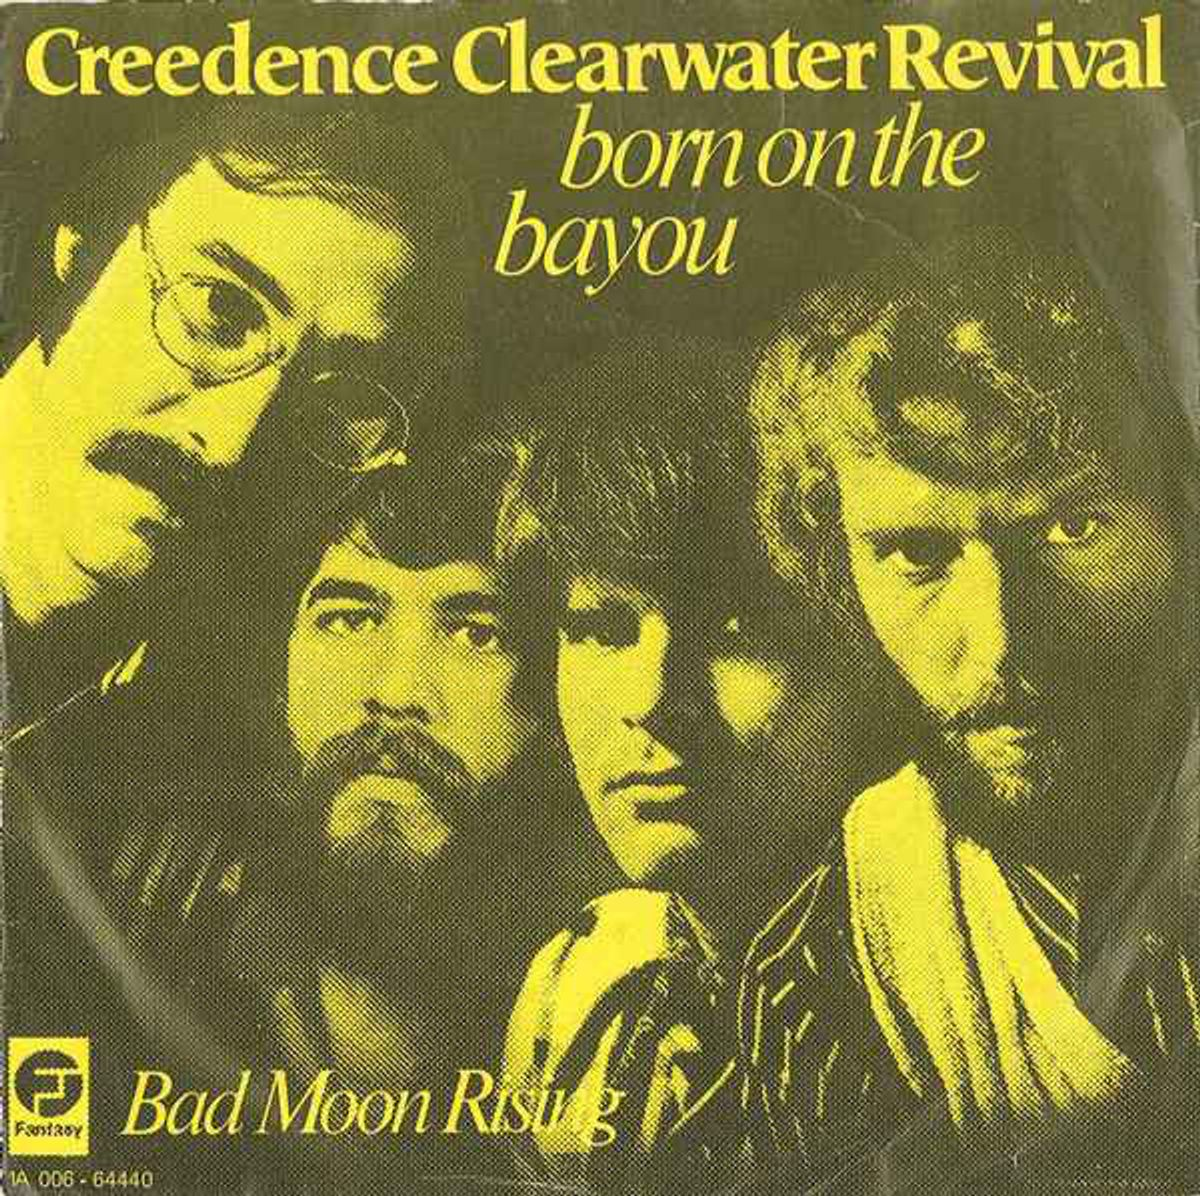 #NewOrleans - Creedence Clearwater Revival - Born On The Bayou (1969)